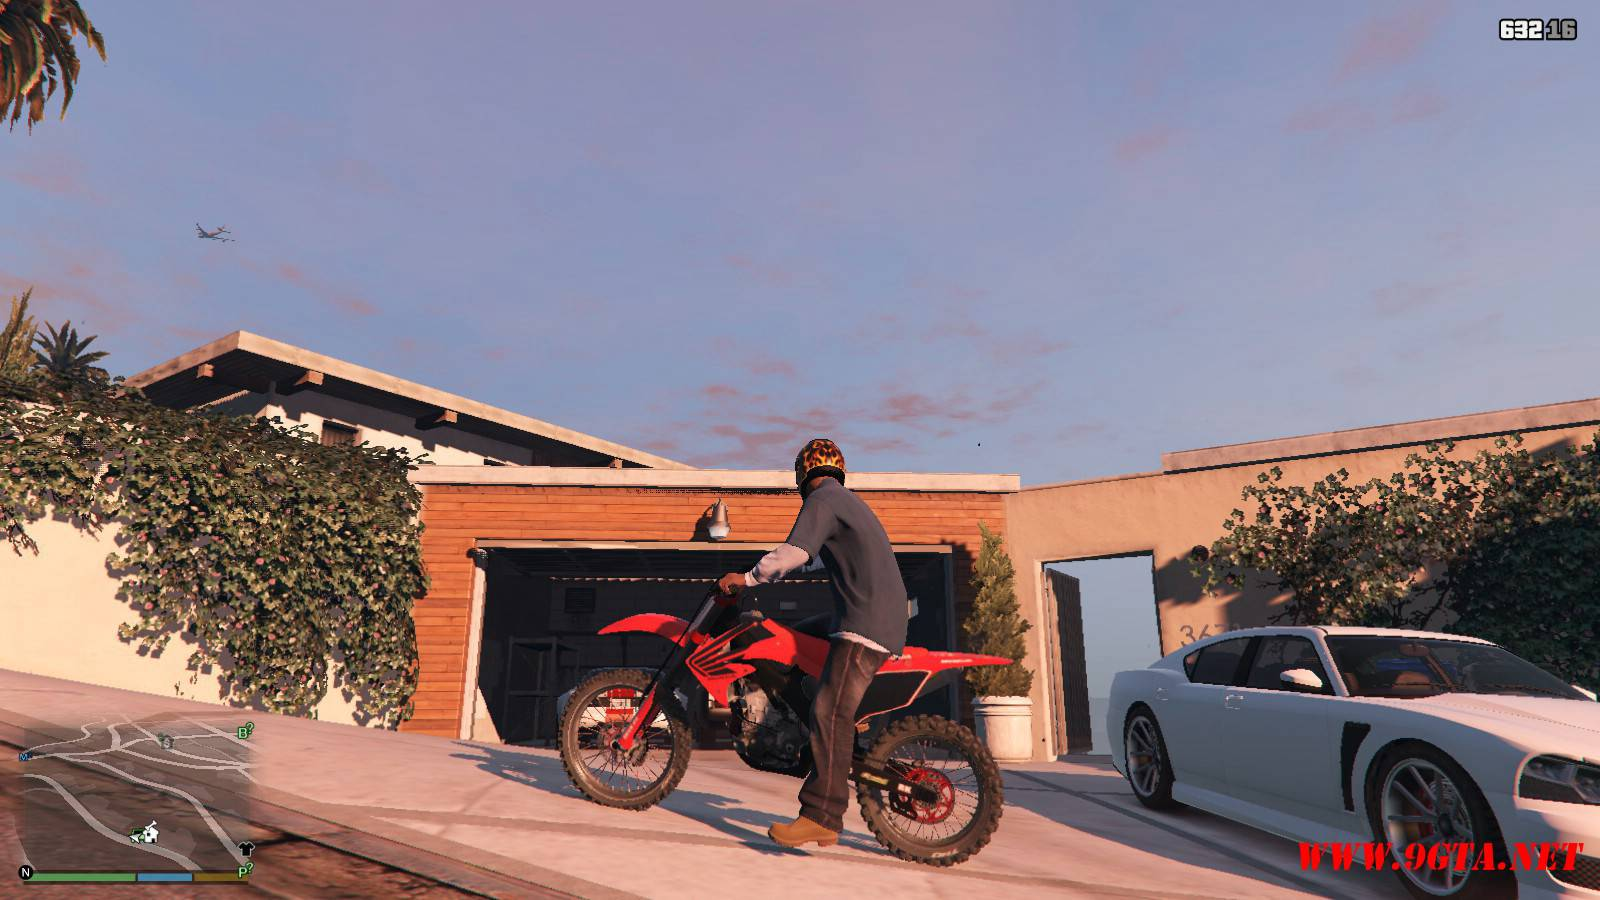 2009 Honda CR450F Special Edition GTA5 Mods (2)